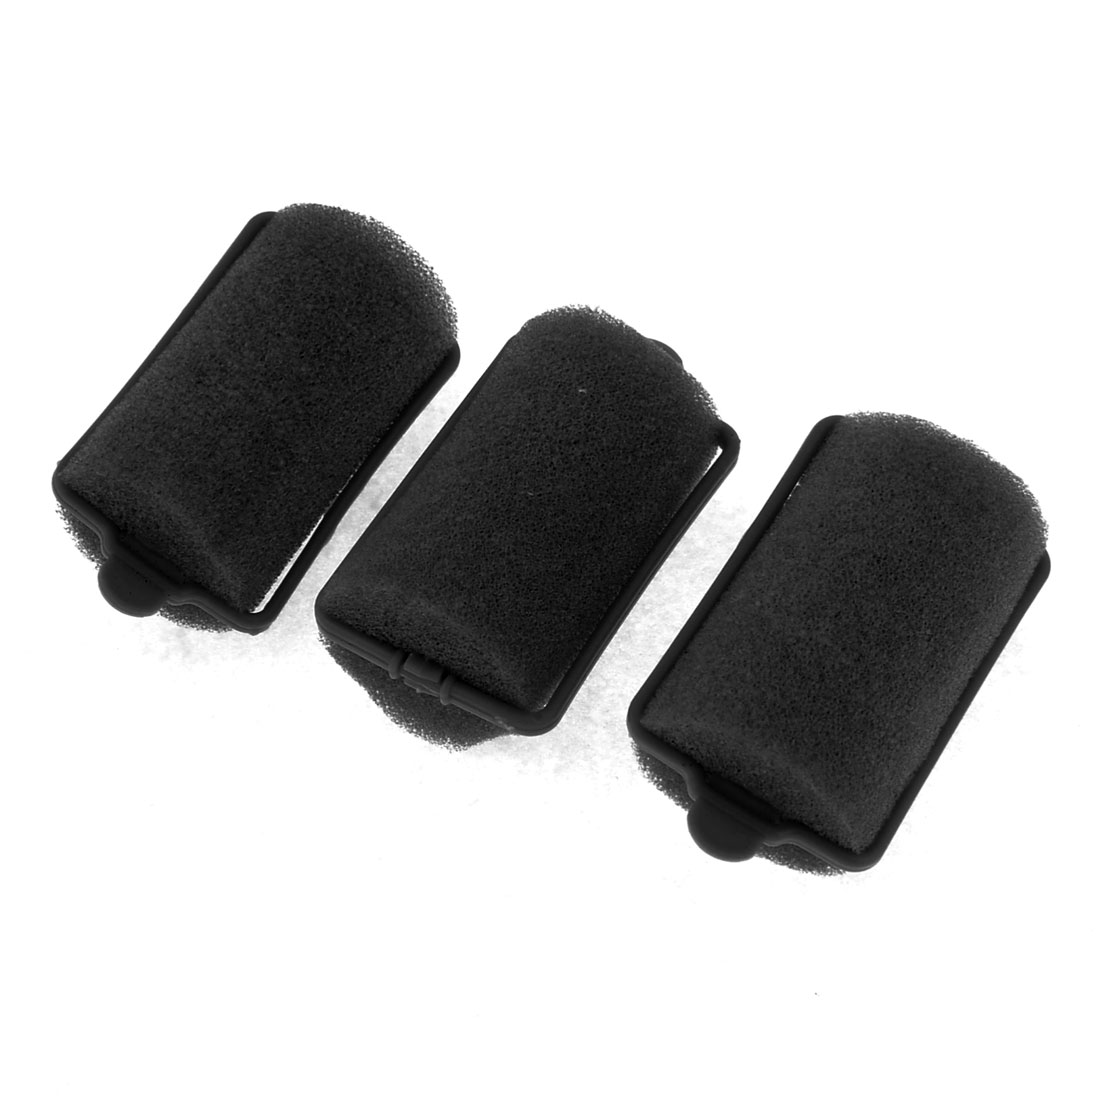 3 Pcs Black Sponge Curly Hairstyle DIY Hair Roller Curler